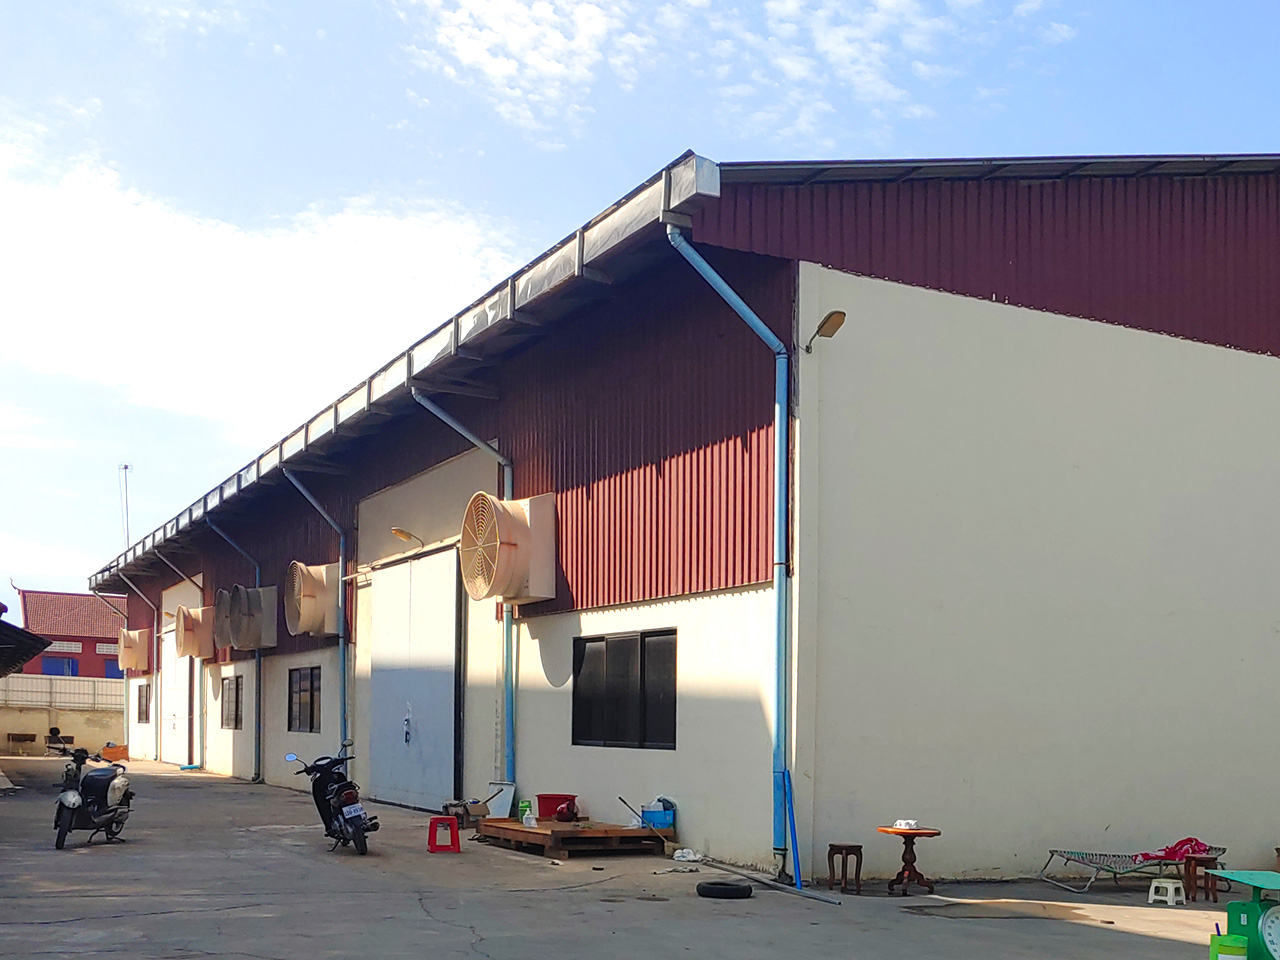 2241 Sq.m Land and warehouse for rent, main road near Makro